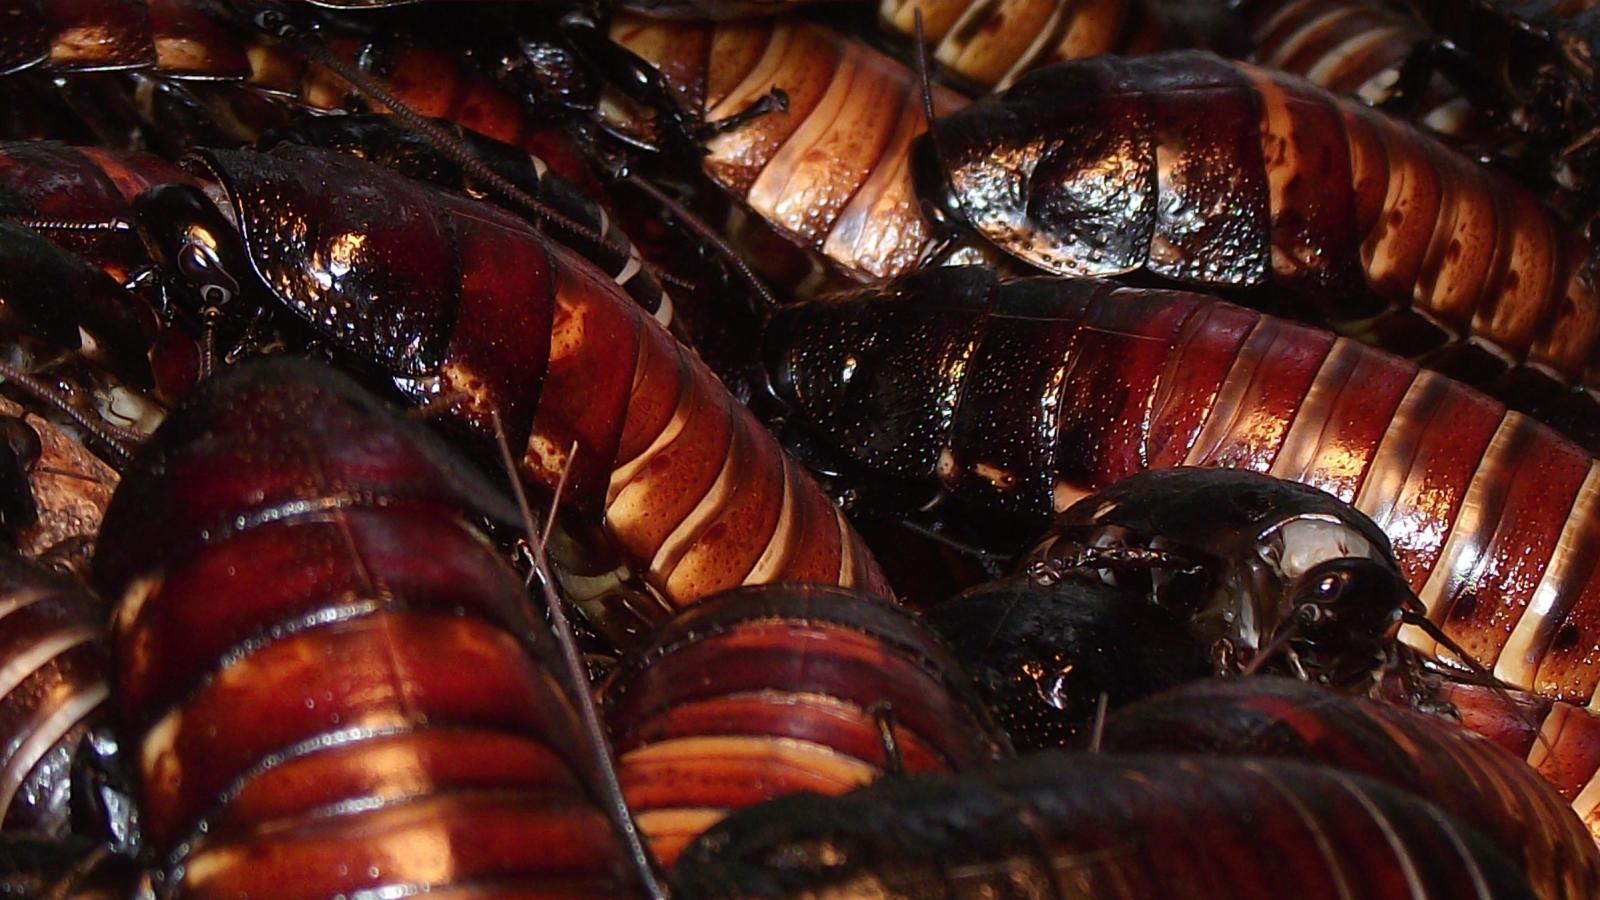 Chinese cockroach farmers are making a bundle selling